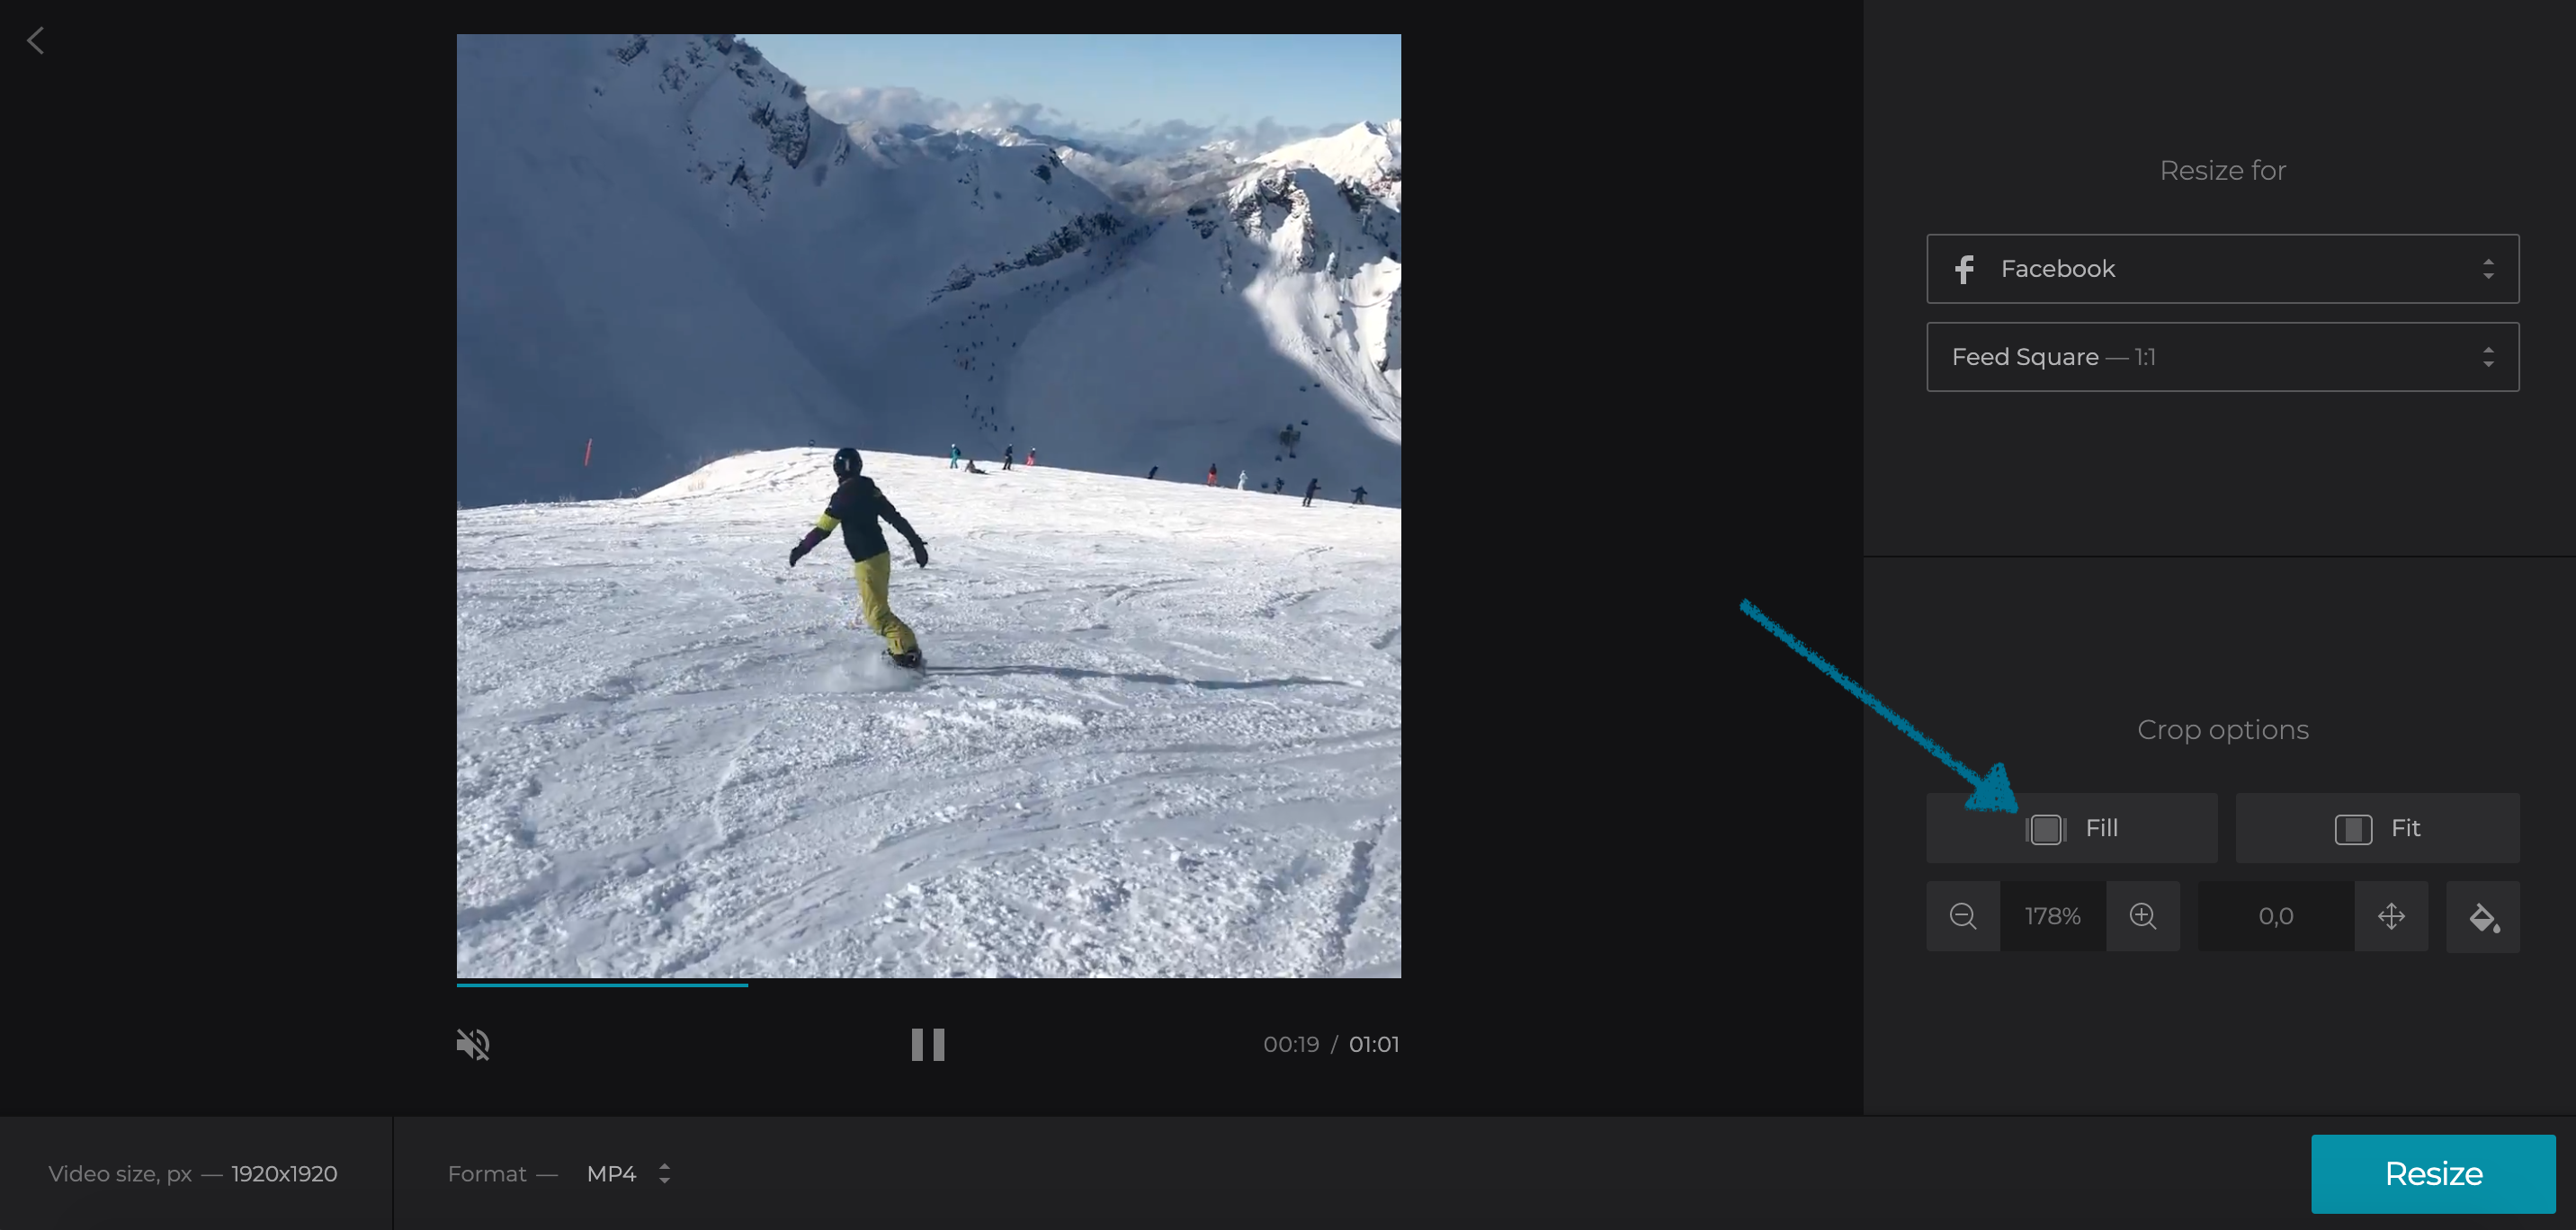 Select a crop option for resized video